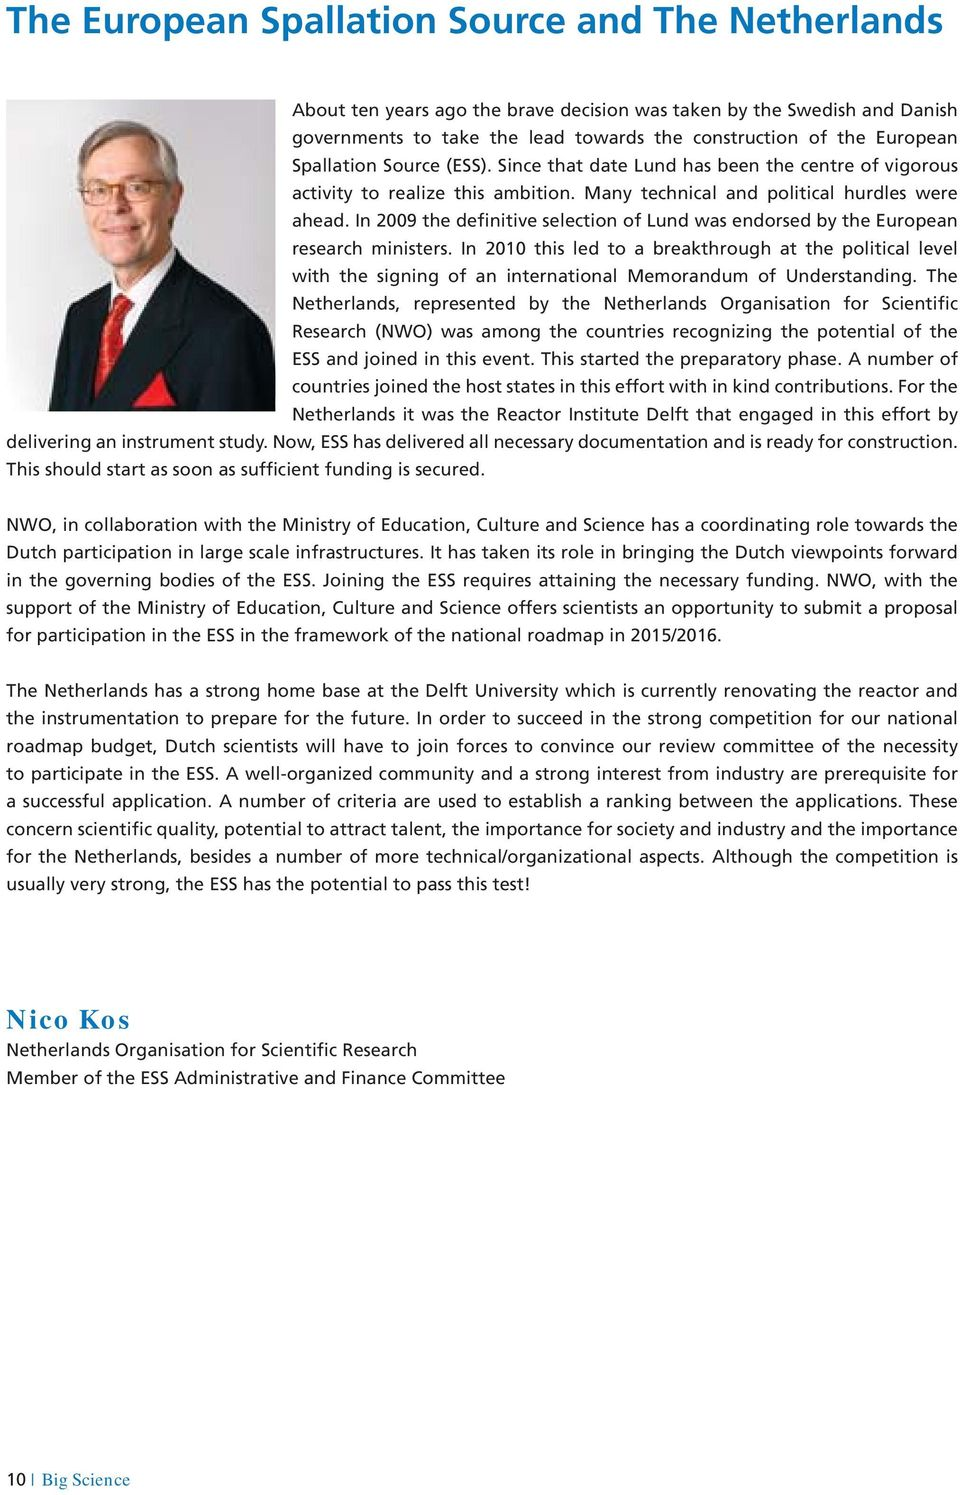 In 2009 the definitive selection of Lund was endorsed by the European research ministers.